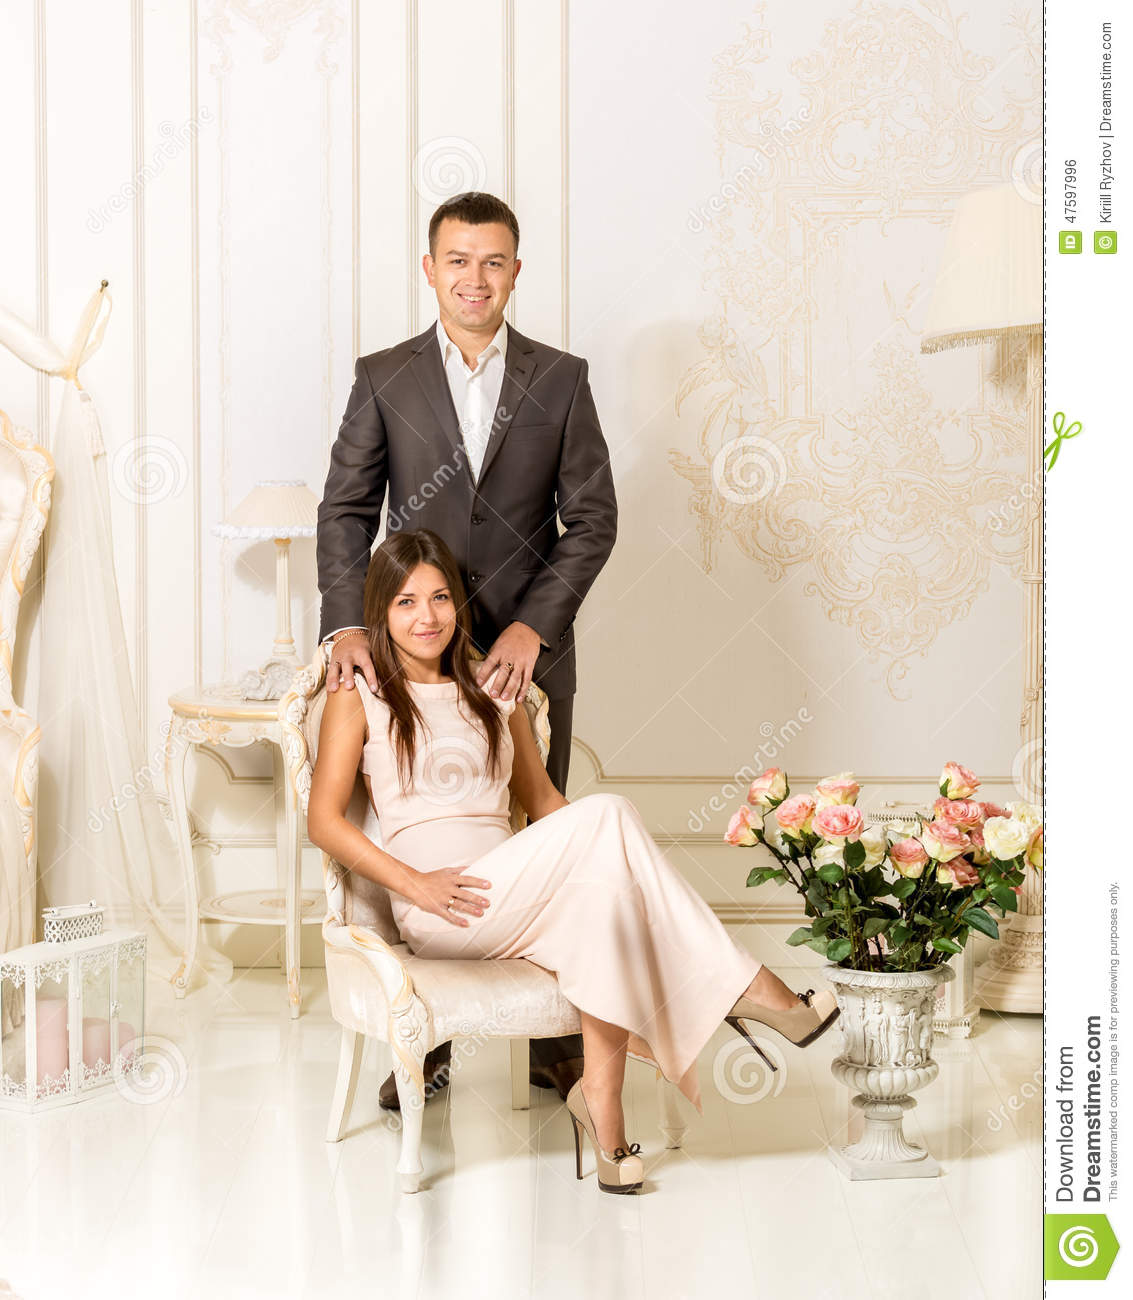 Husband Chair Husband Standing Behind Wife Sitting In Chair At Luxury